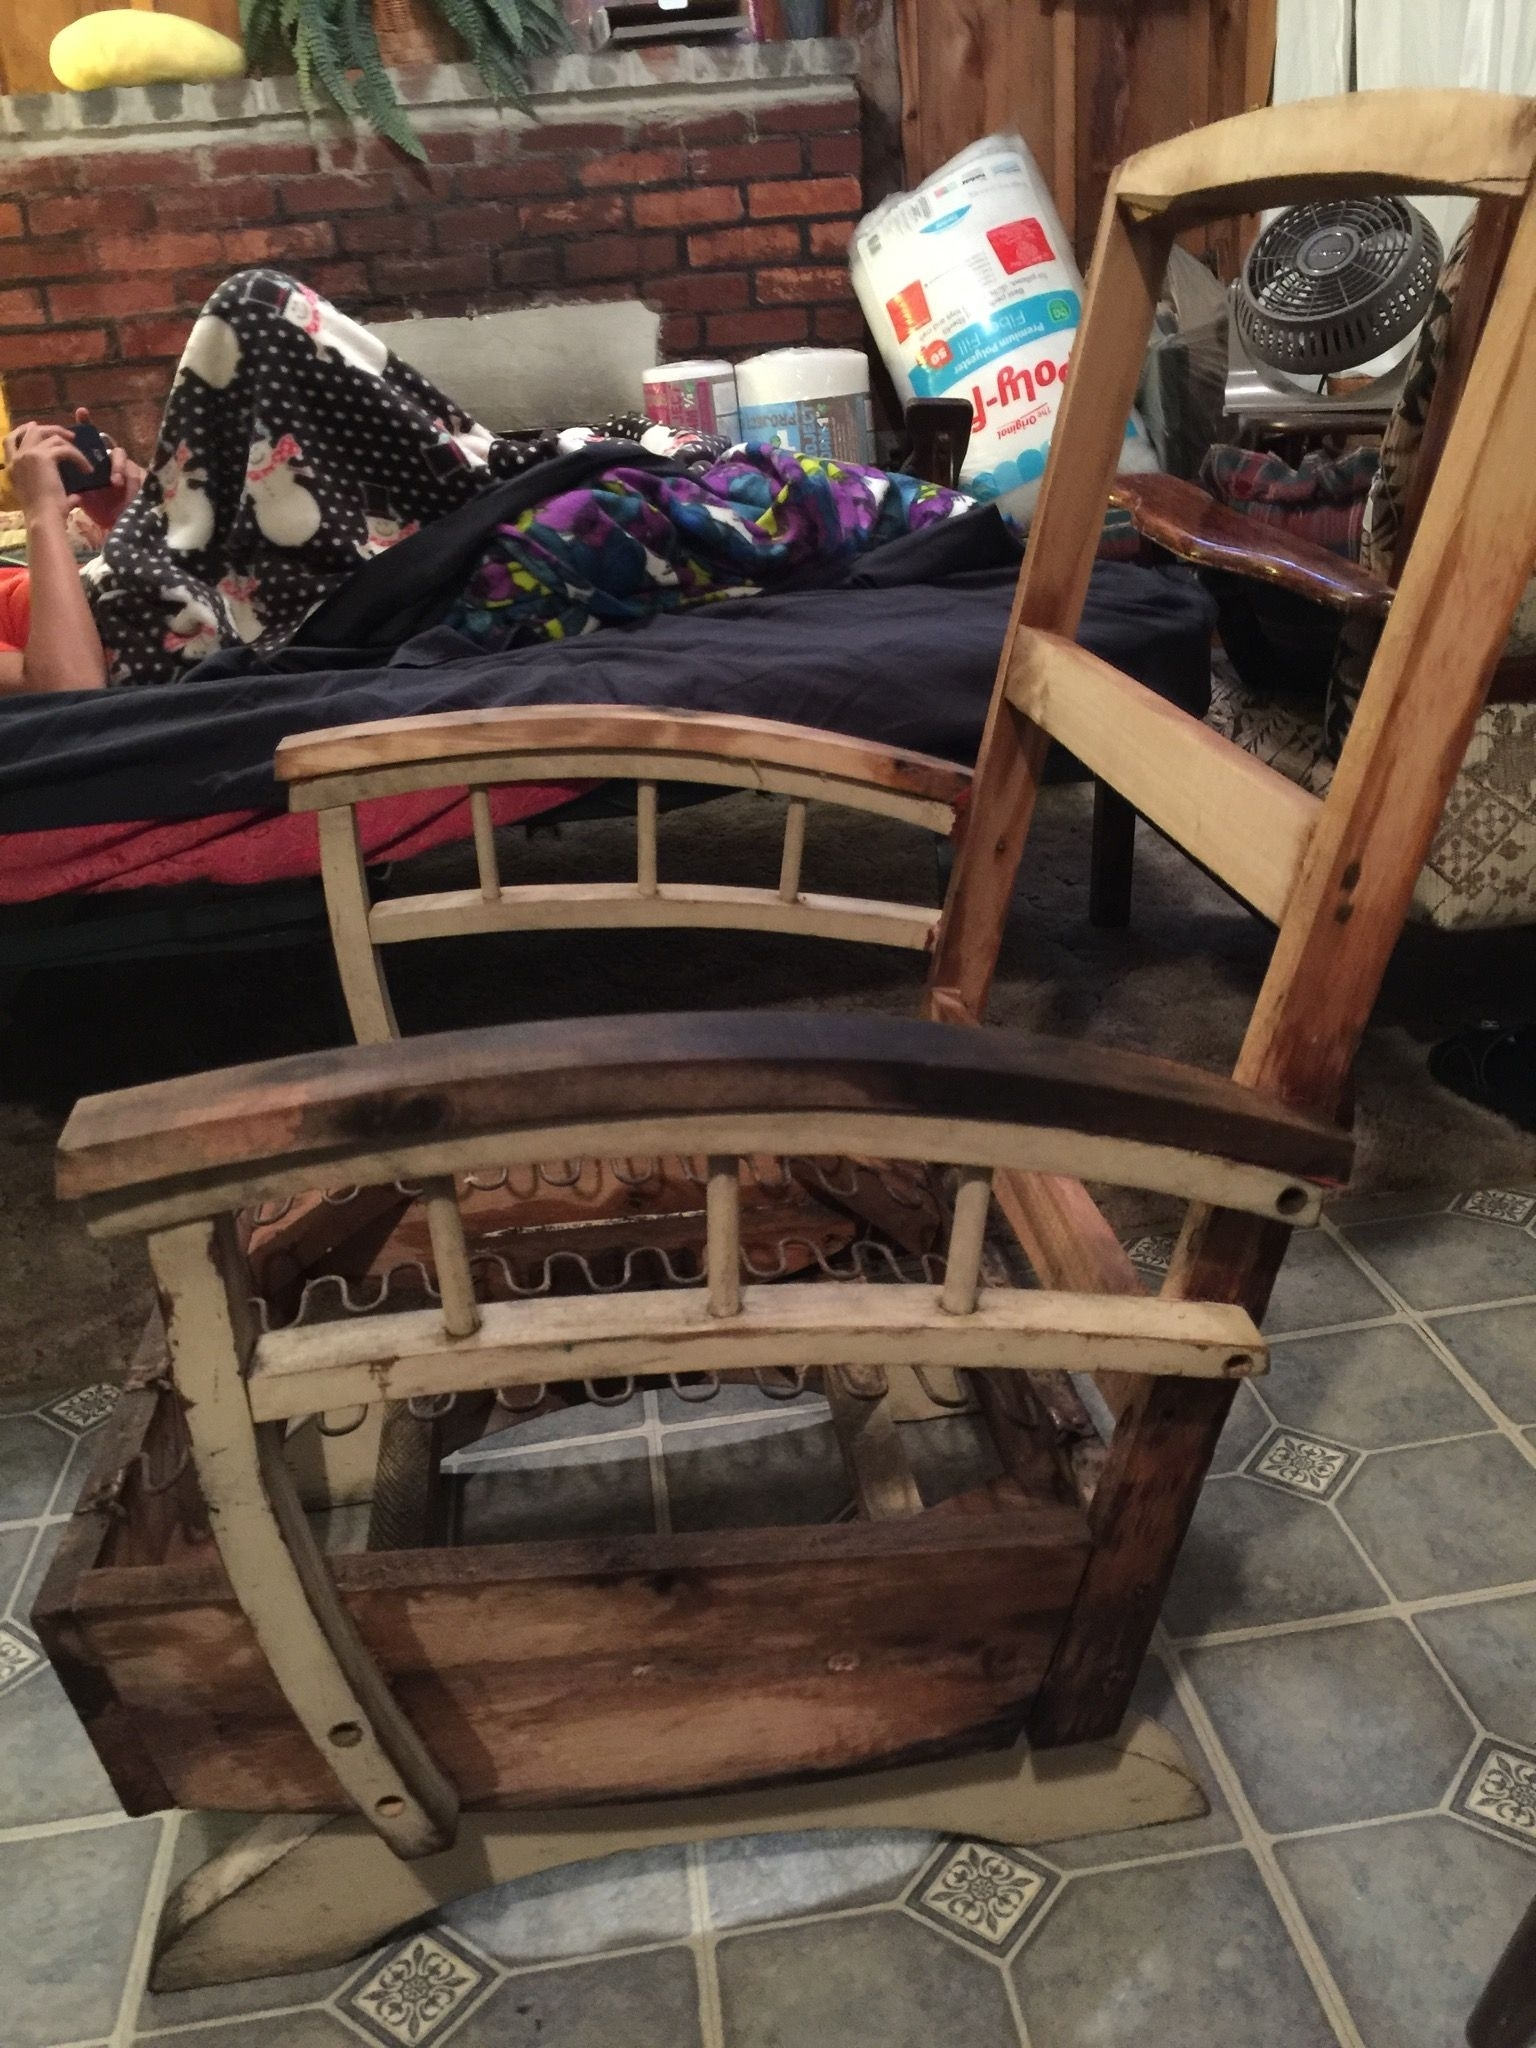 Naked Chair! Stripped Down To Bare Bones! On Vacation In Maine Throughout Zen Rocking Chairs (View 9 of 15)